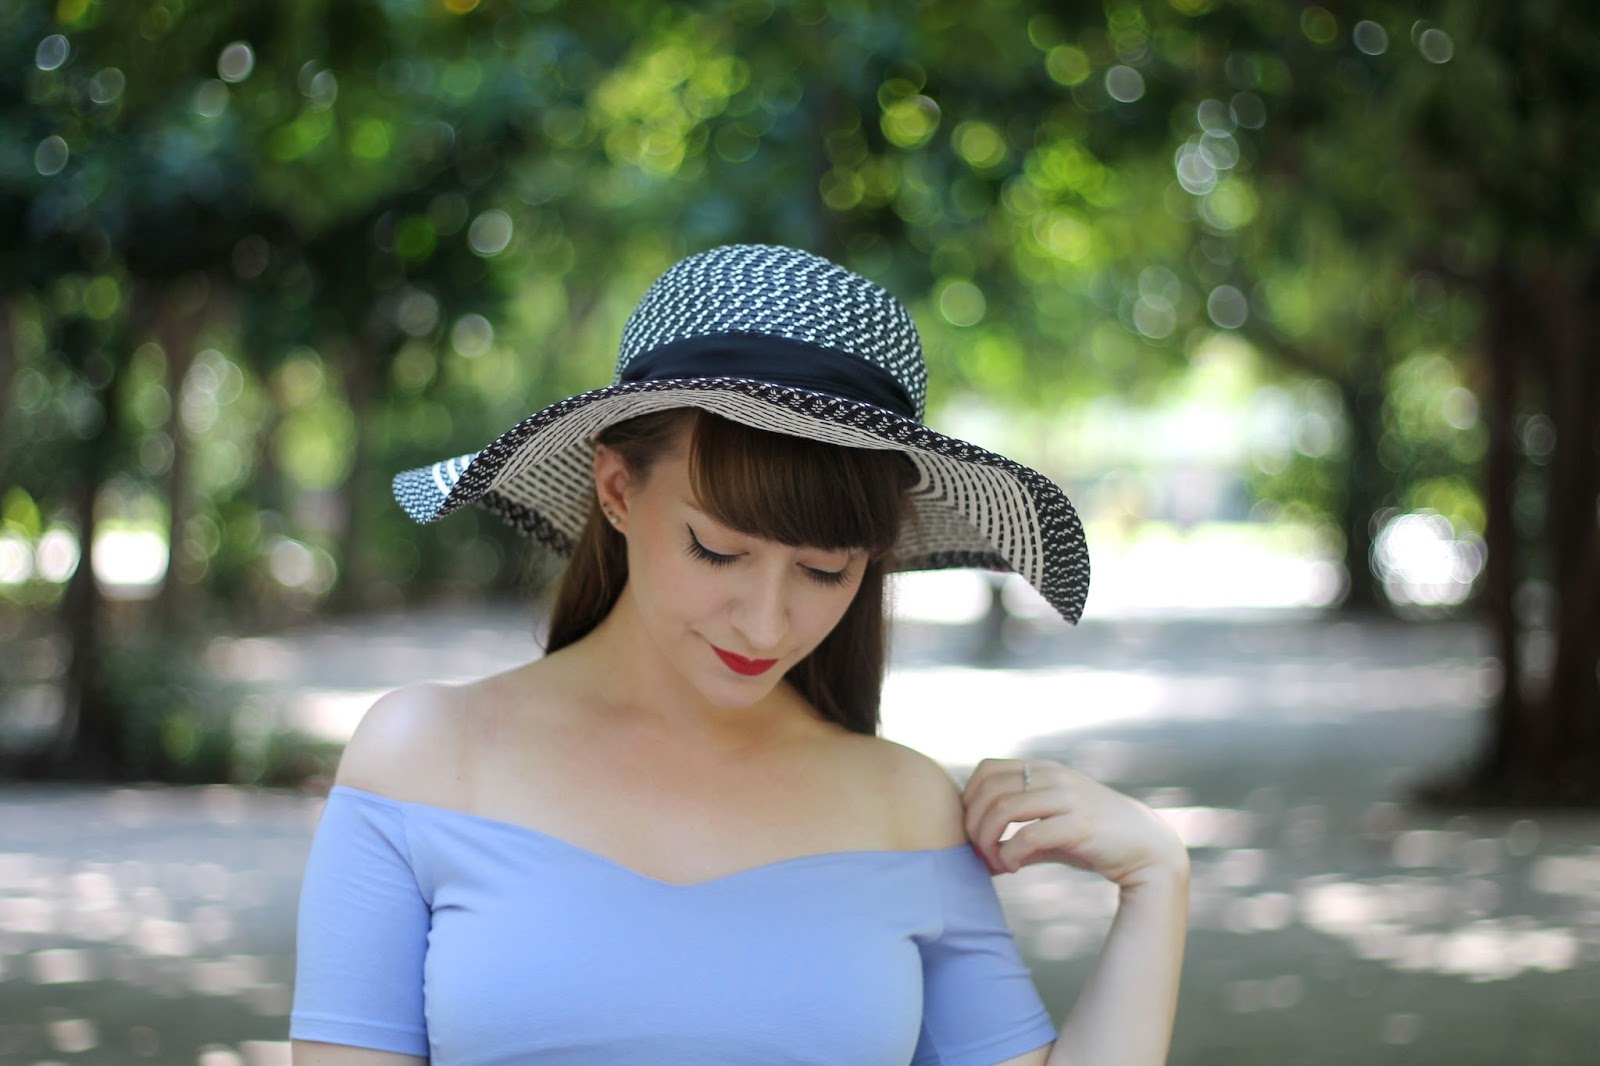 Black and white floppy sunhat and bardot top